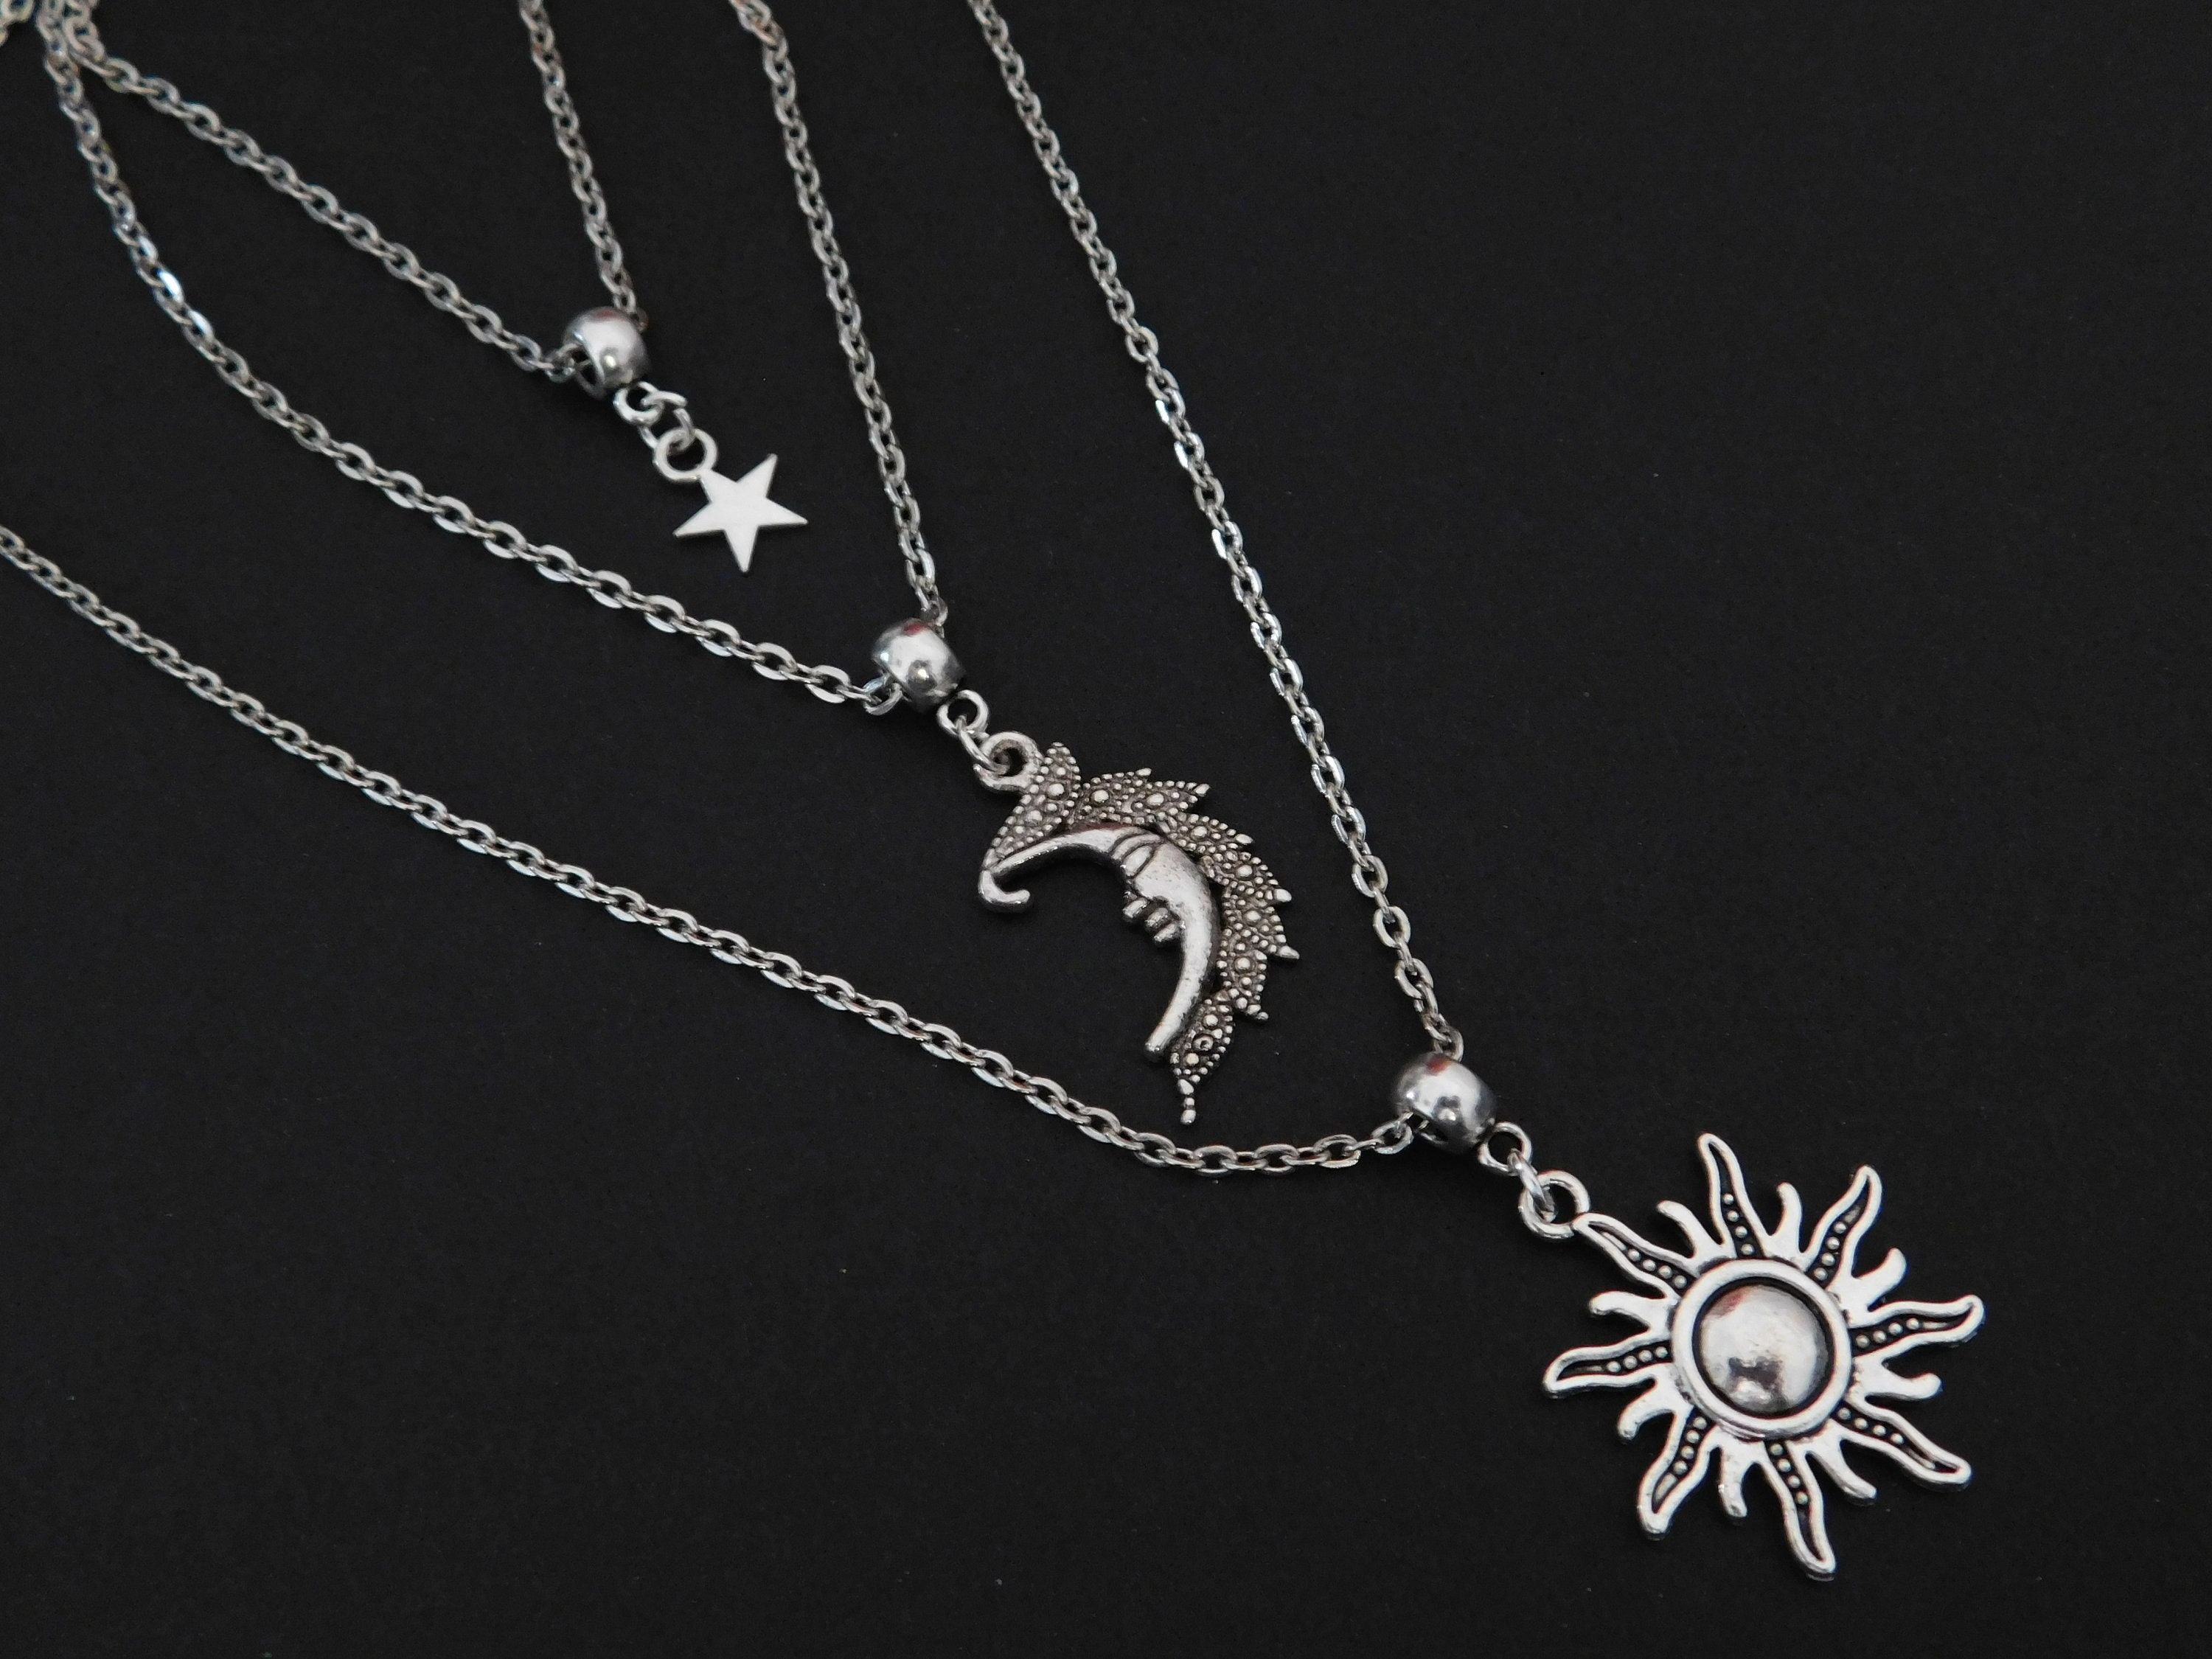 necklace gallery necklaces il friendship or listing star sun dainty heart fullxfull silver photo moon